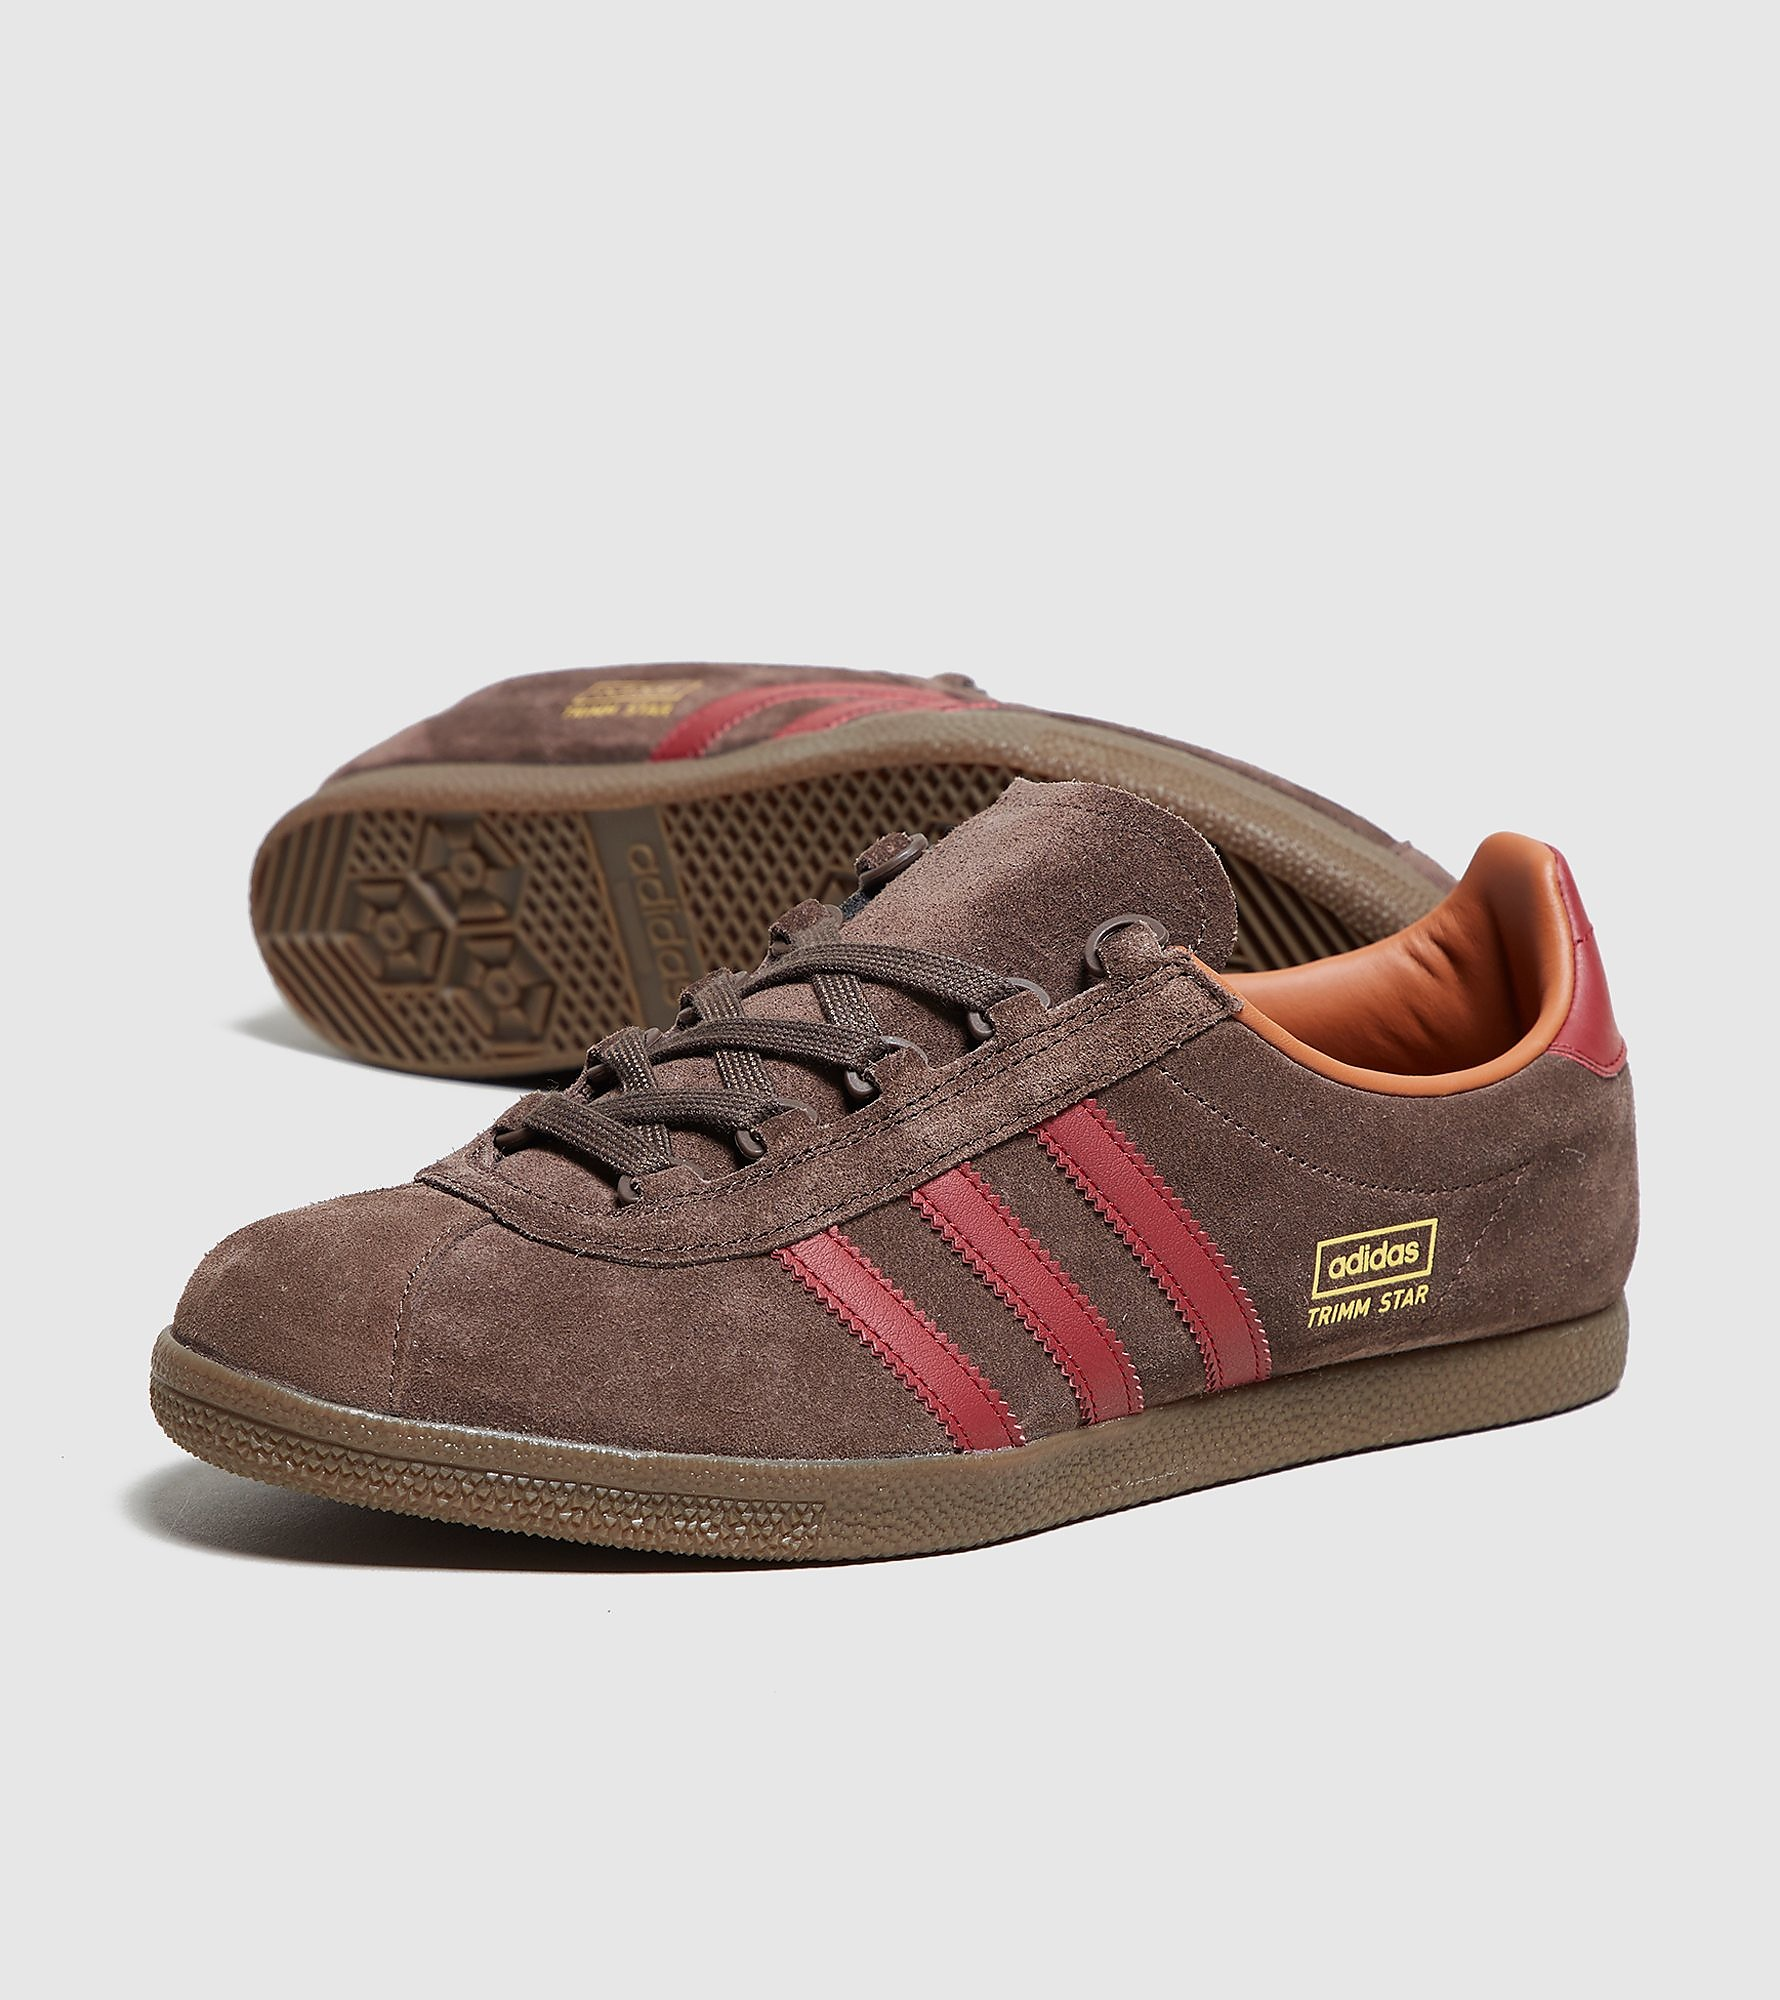 adidas Originals Trimm Star - exclusivité size?